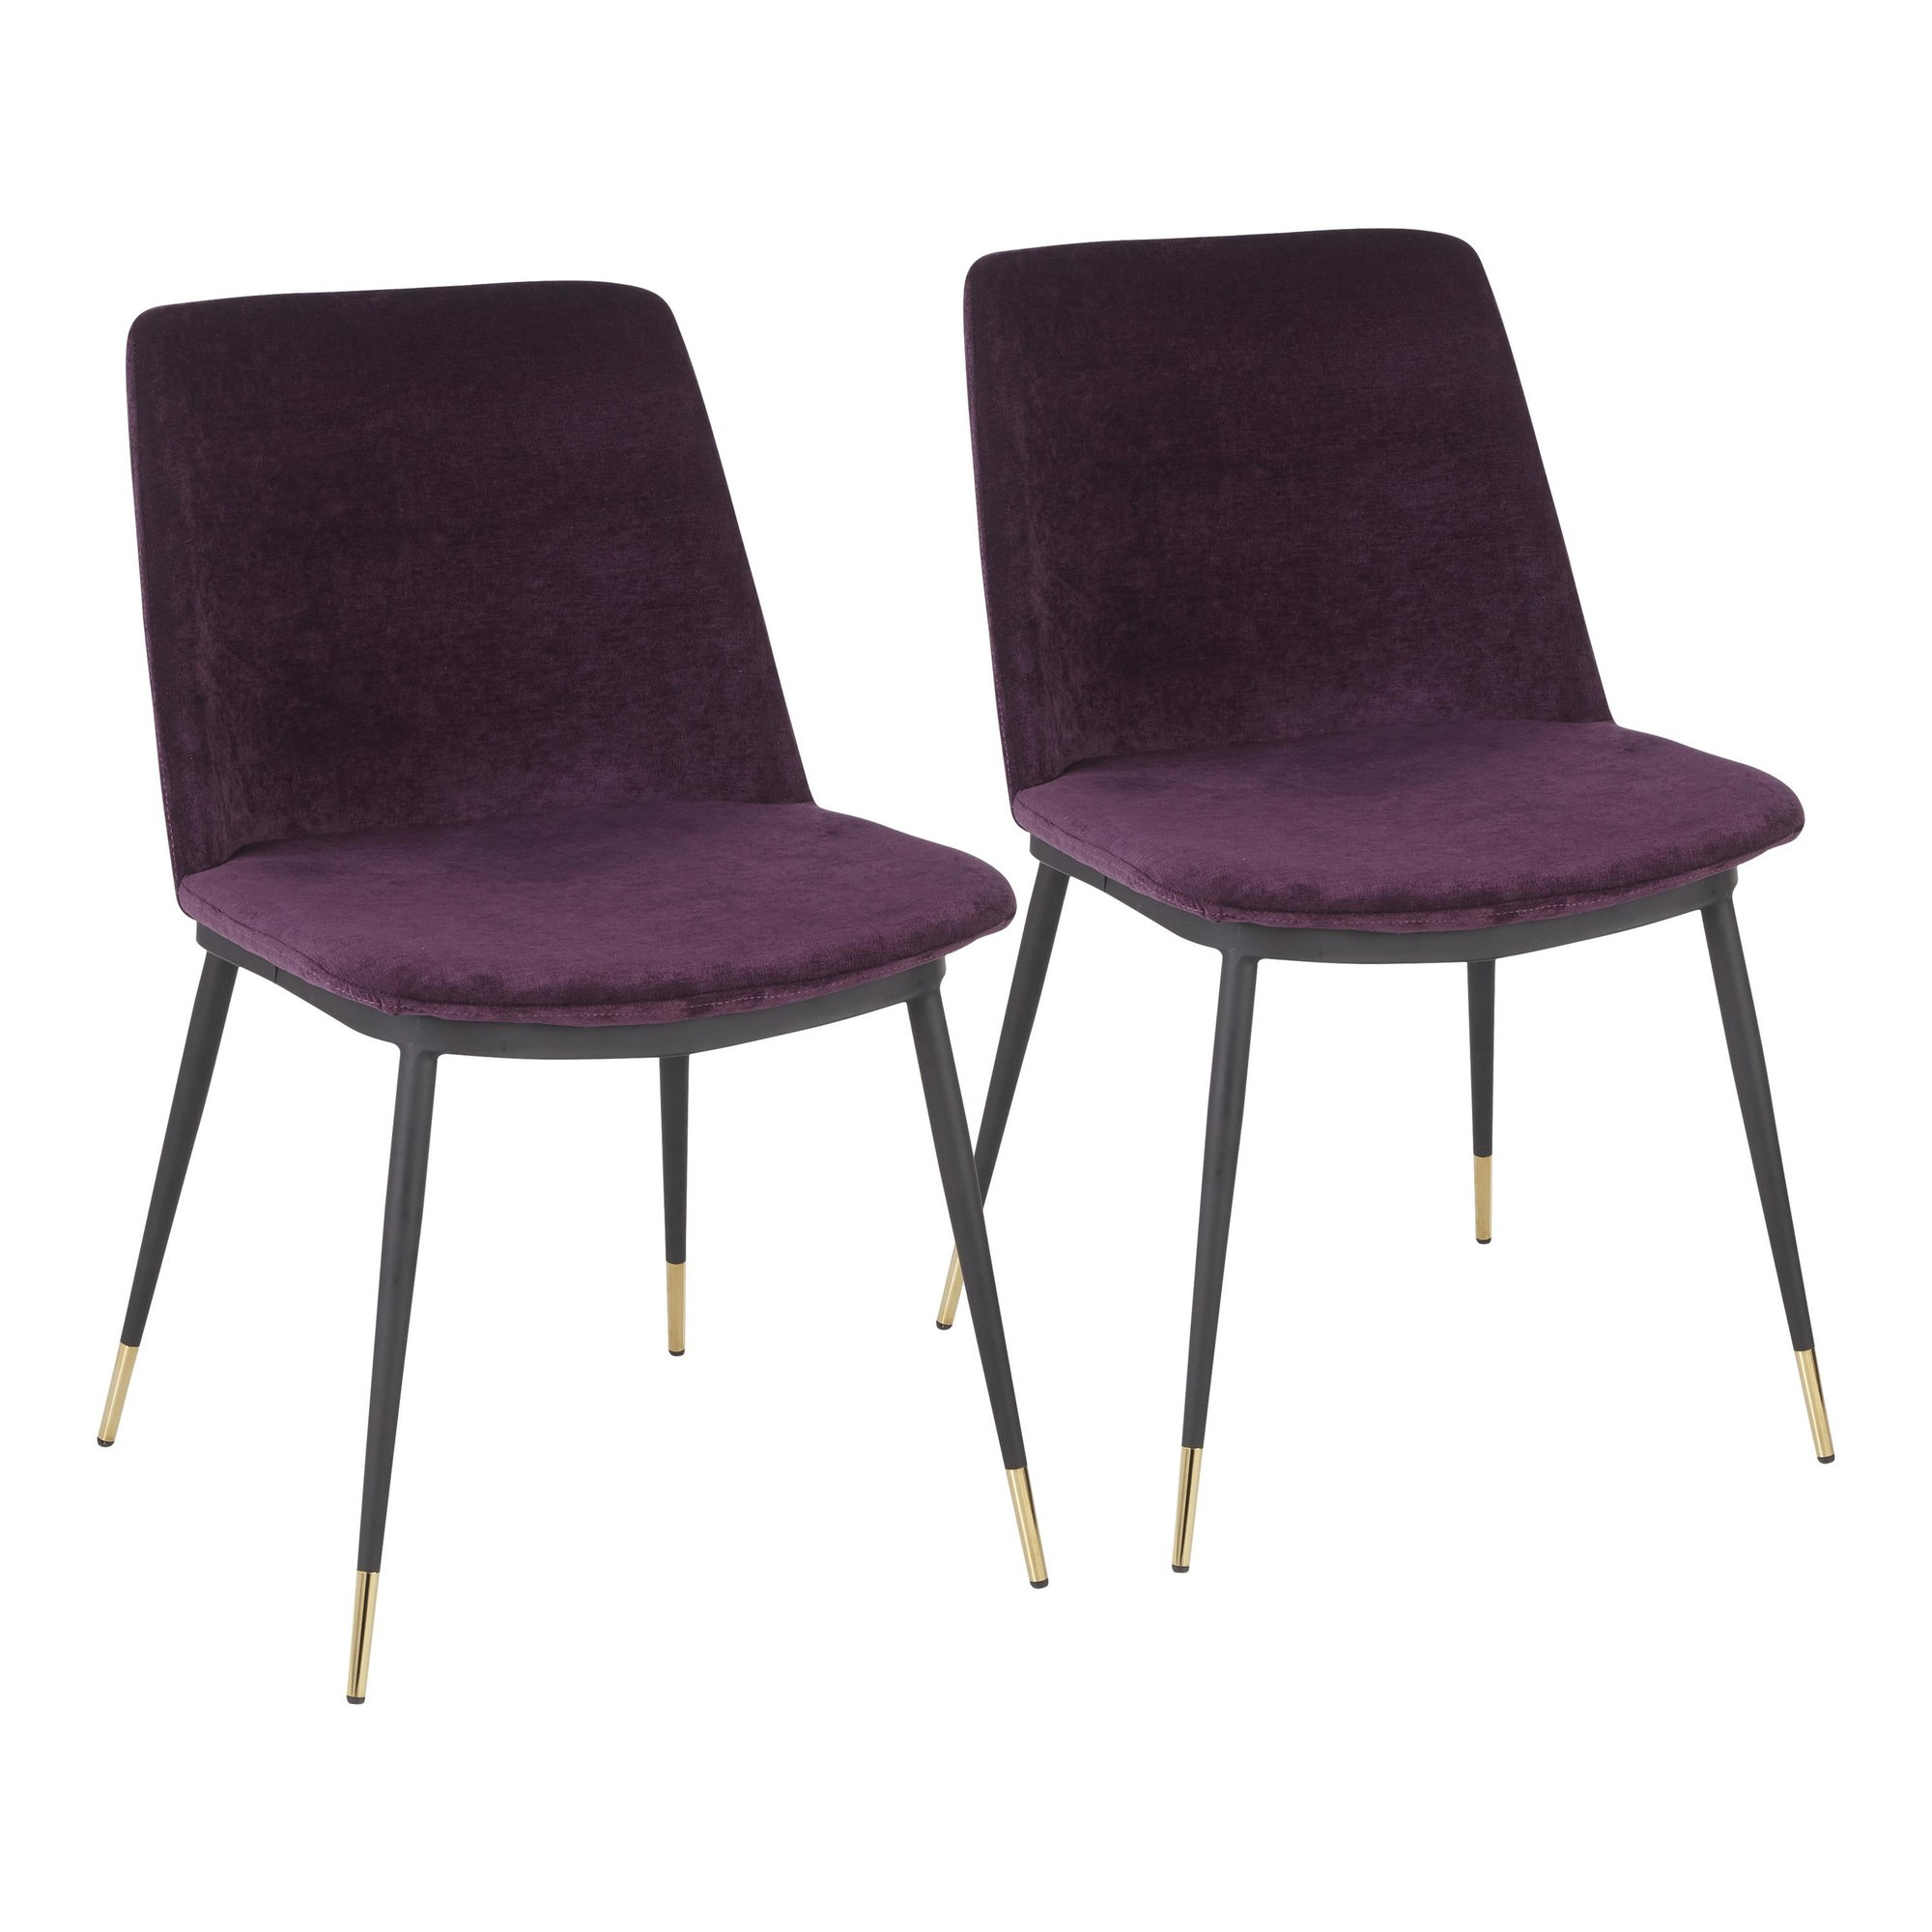 Wanda Chair With Black Metal Legs With Gold Accent And Purple Fabric 1stopbedrooms